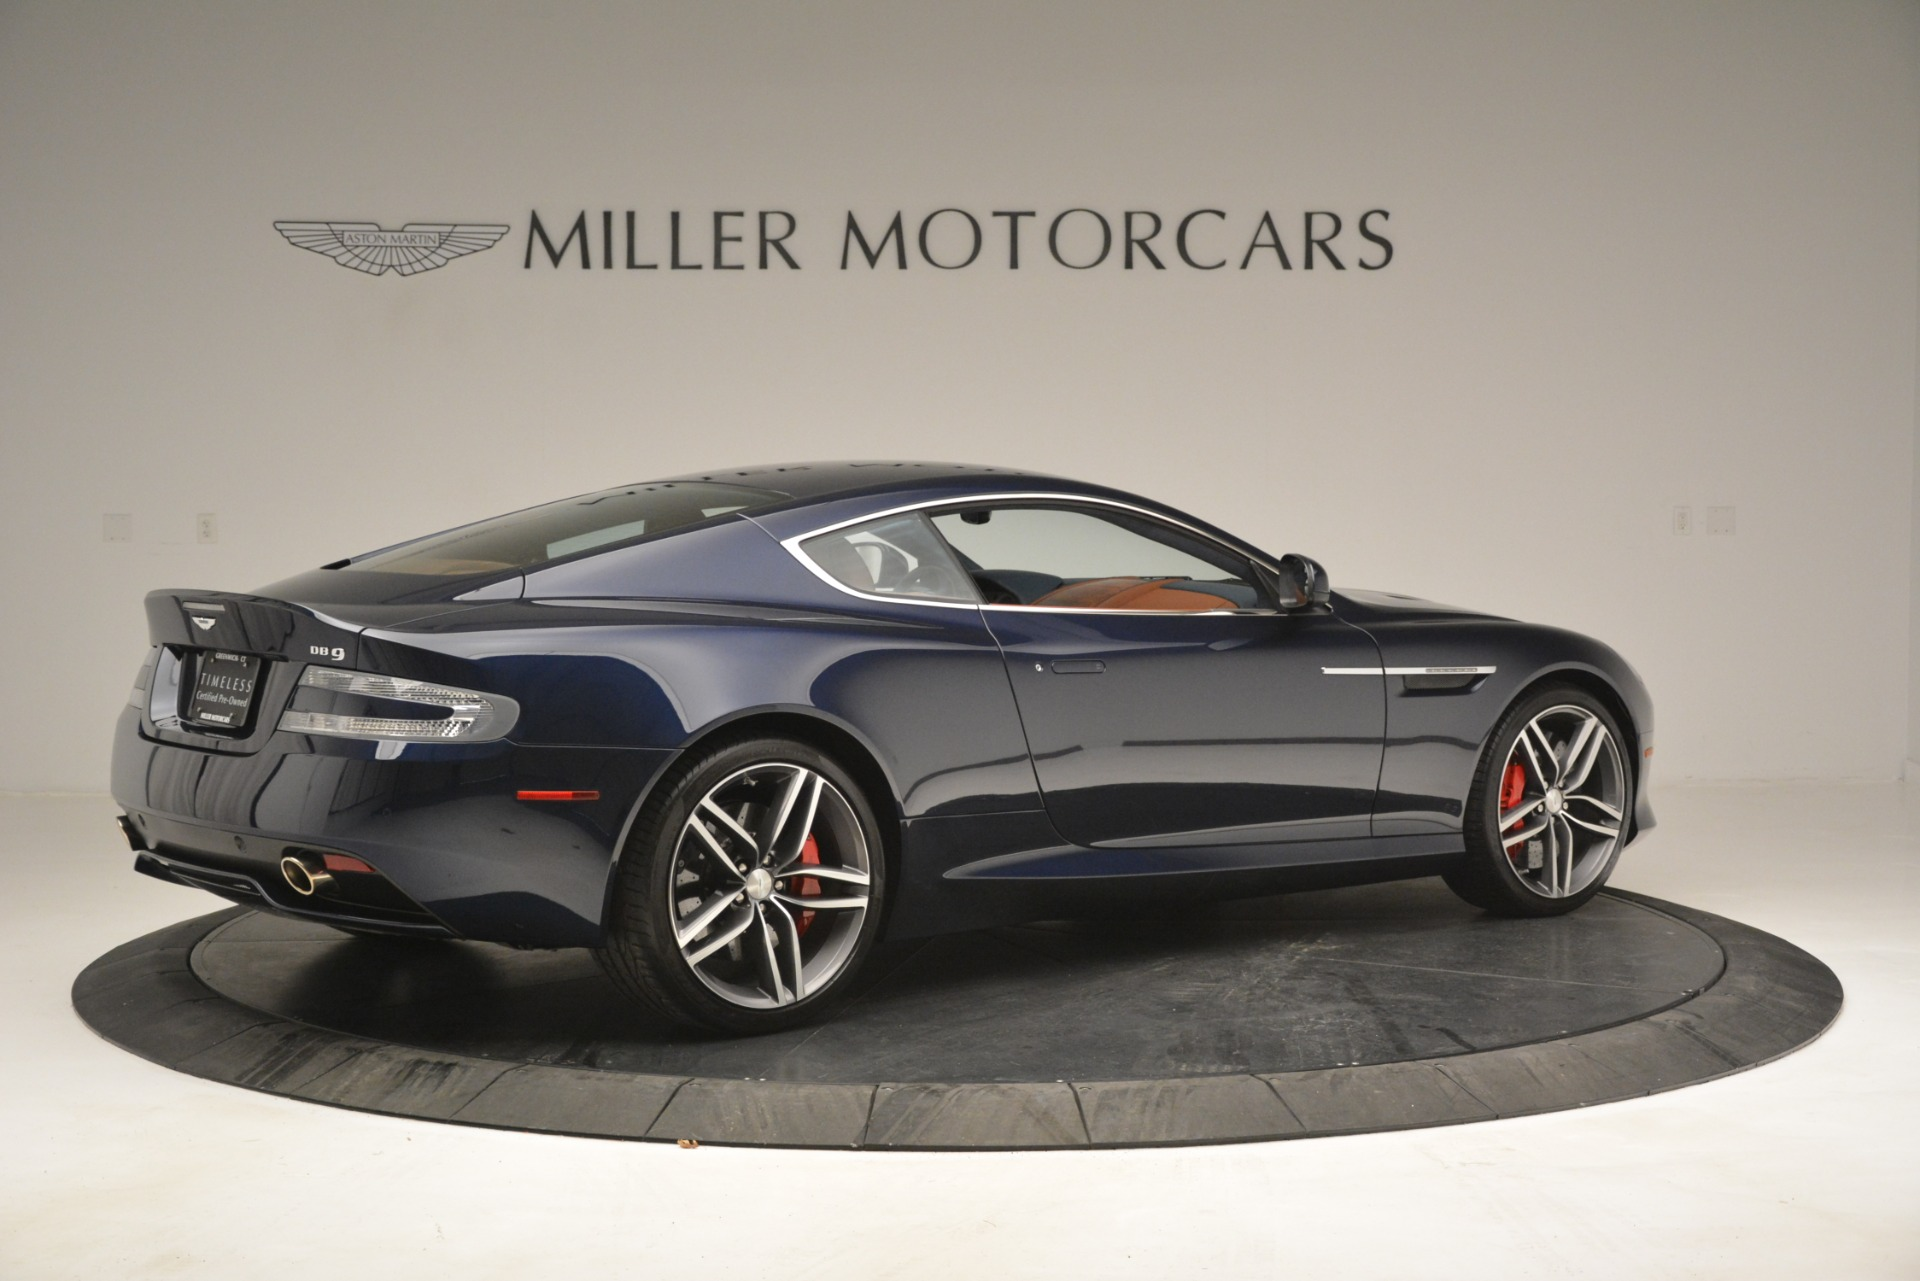 Used 2014 Aston Martin DB9 Coupe For Sale In Greenwich, CT 3010_p8